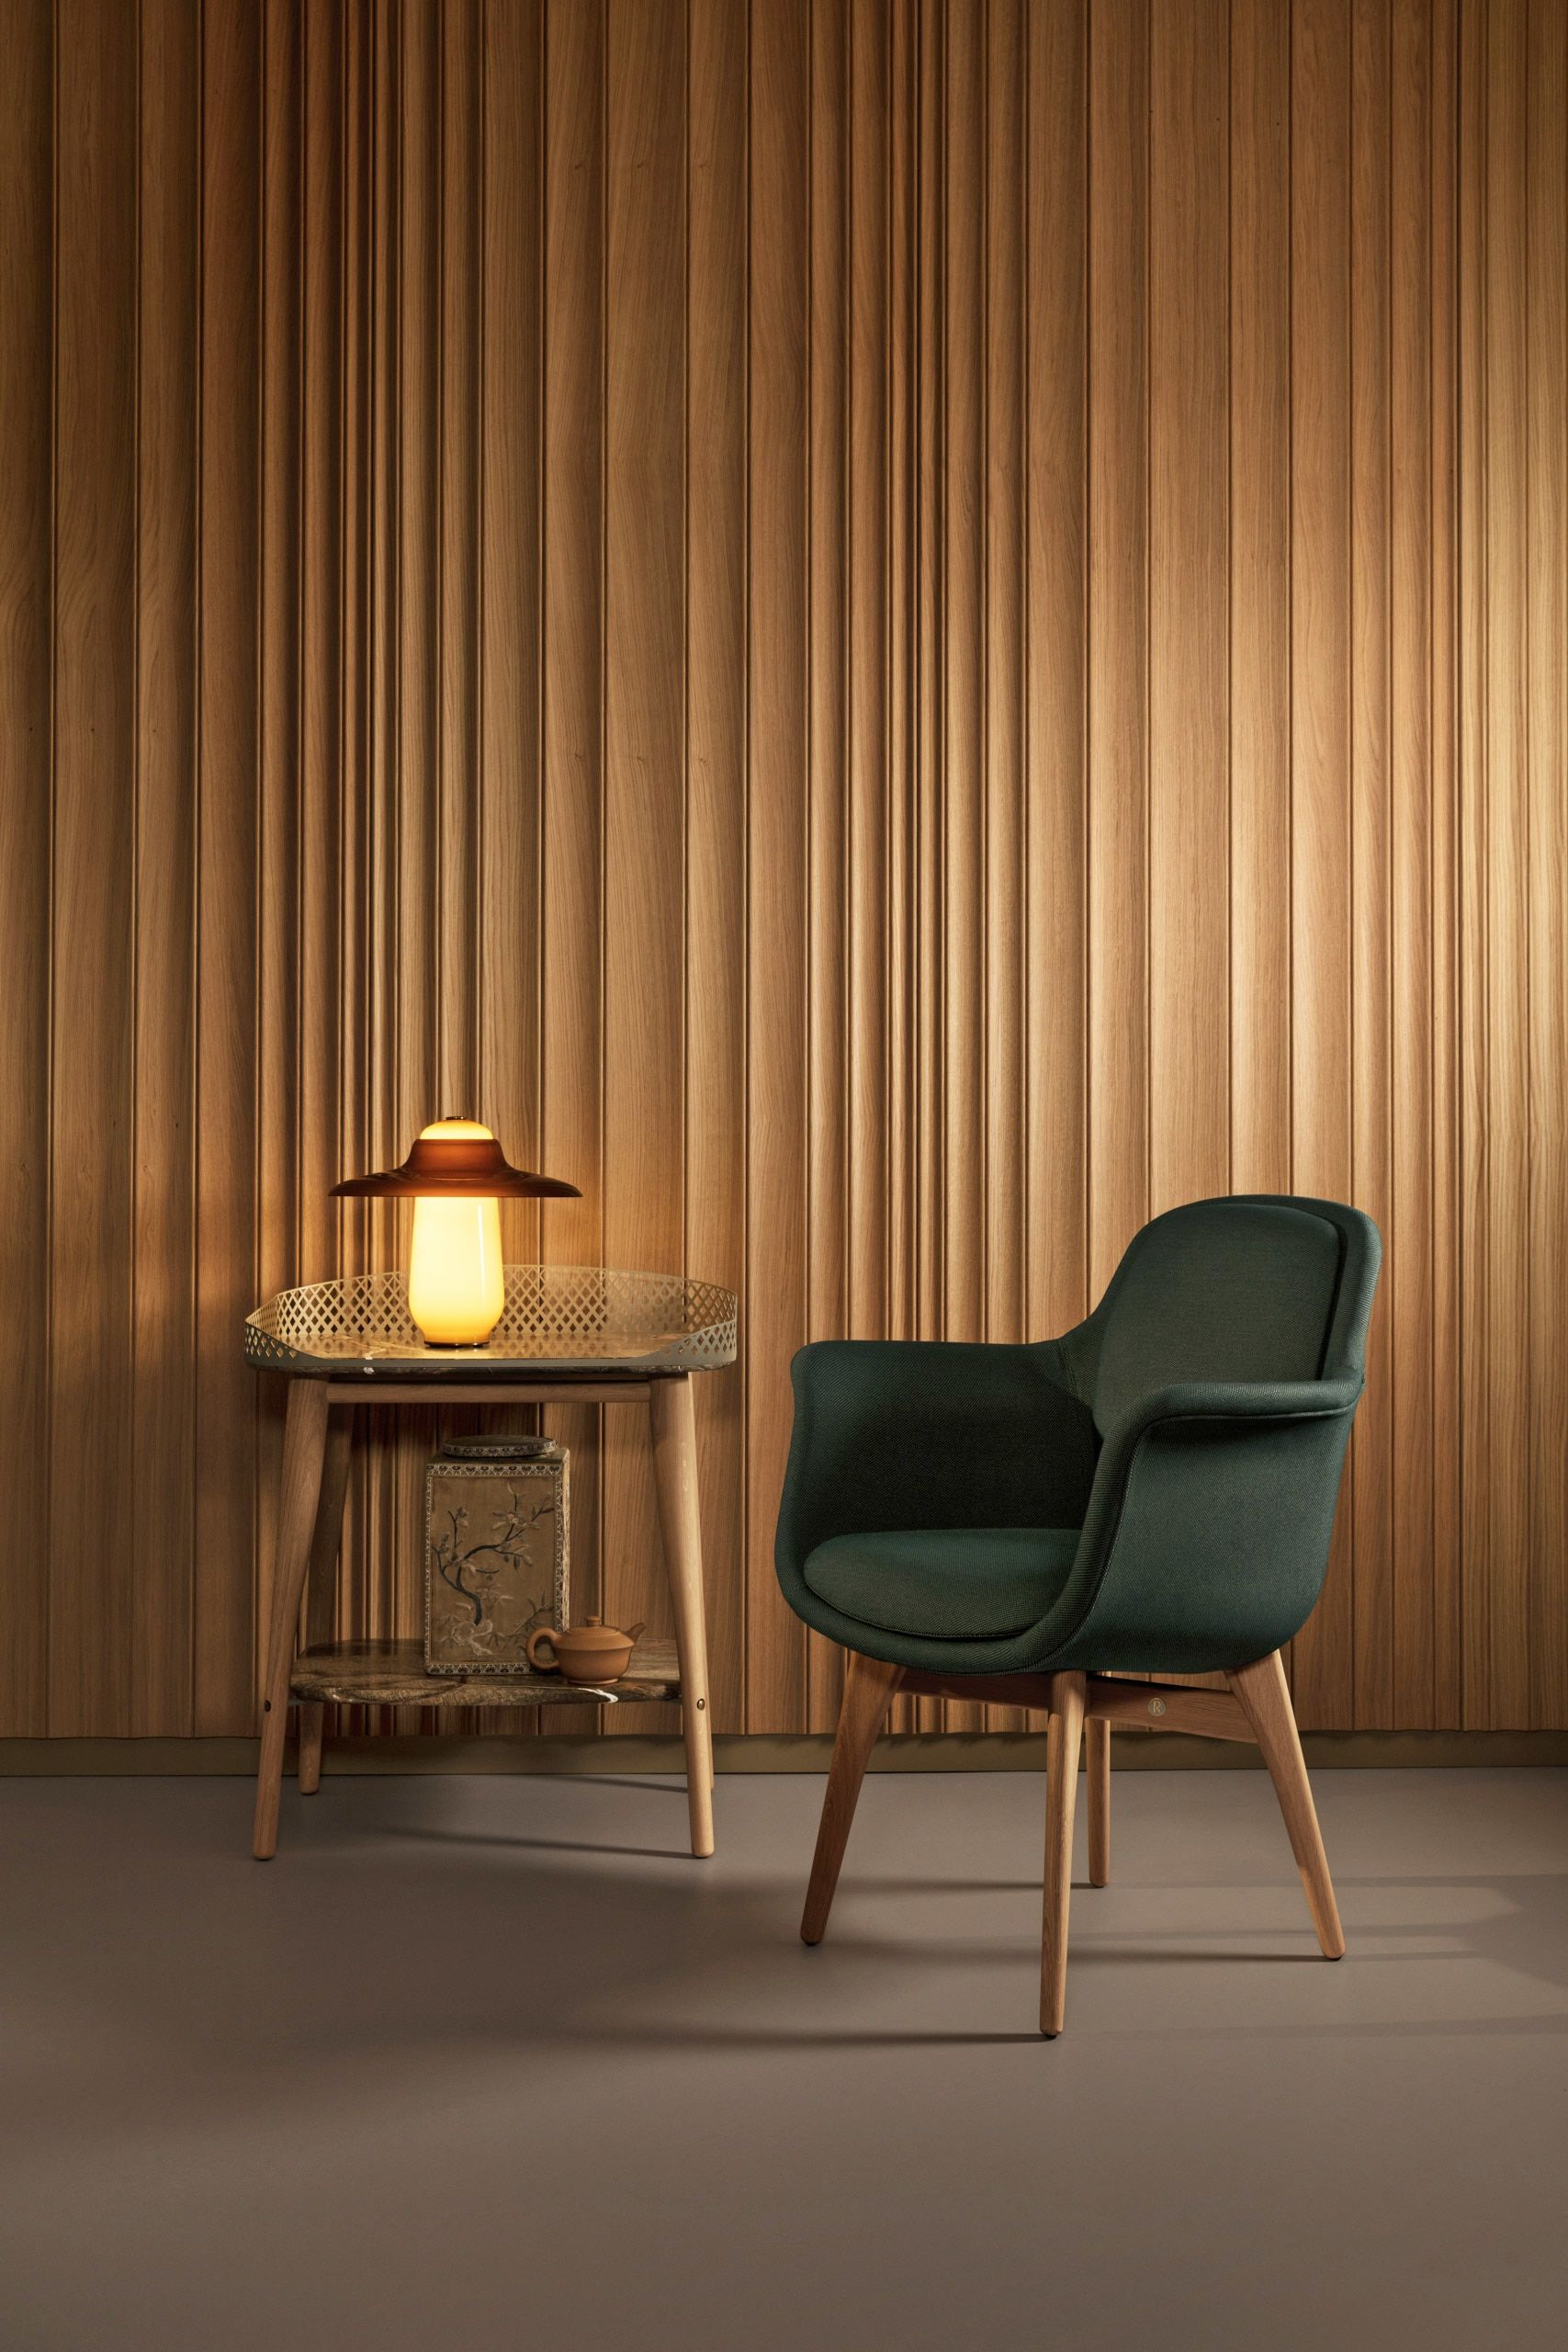 Living Room Wall Panel Design: Acoustic Wall Panels, Acoustic Wall, Wall Panel